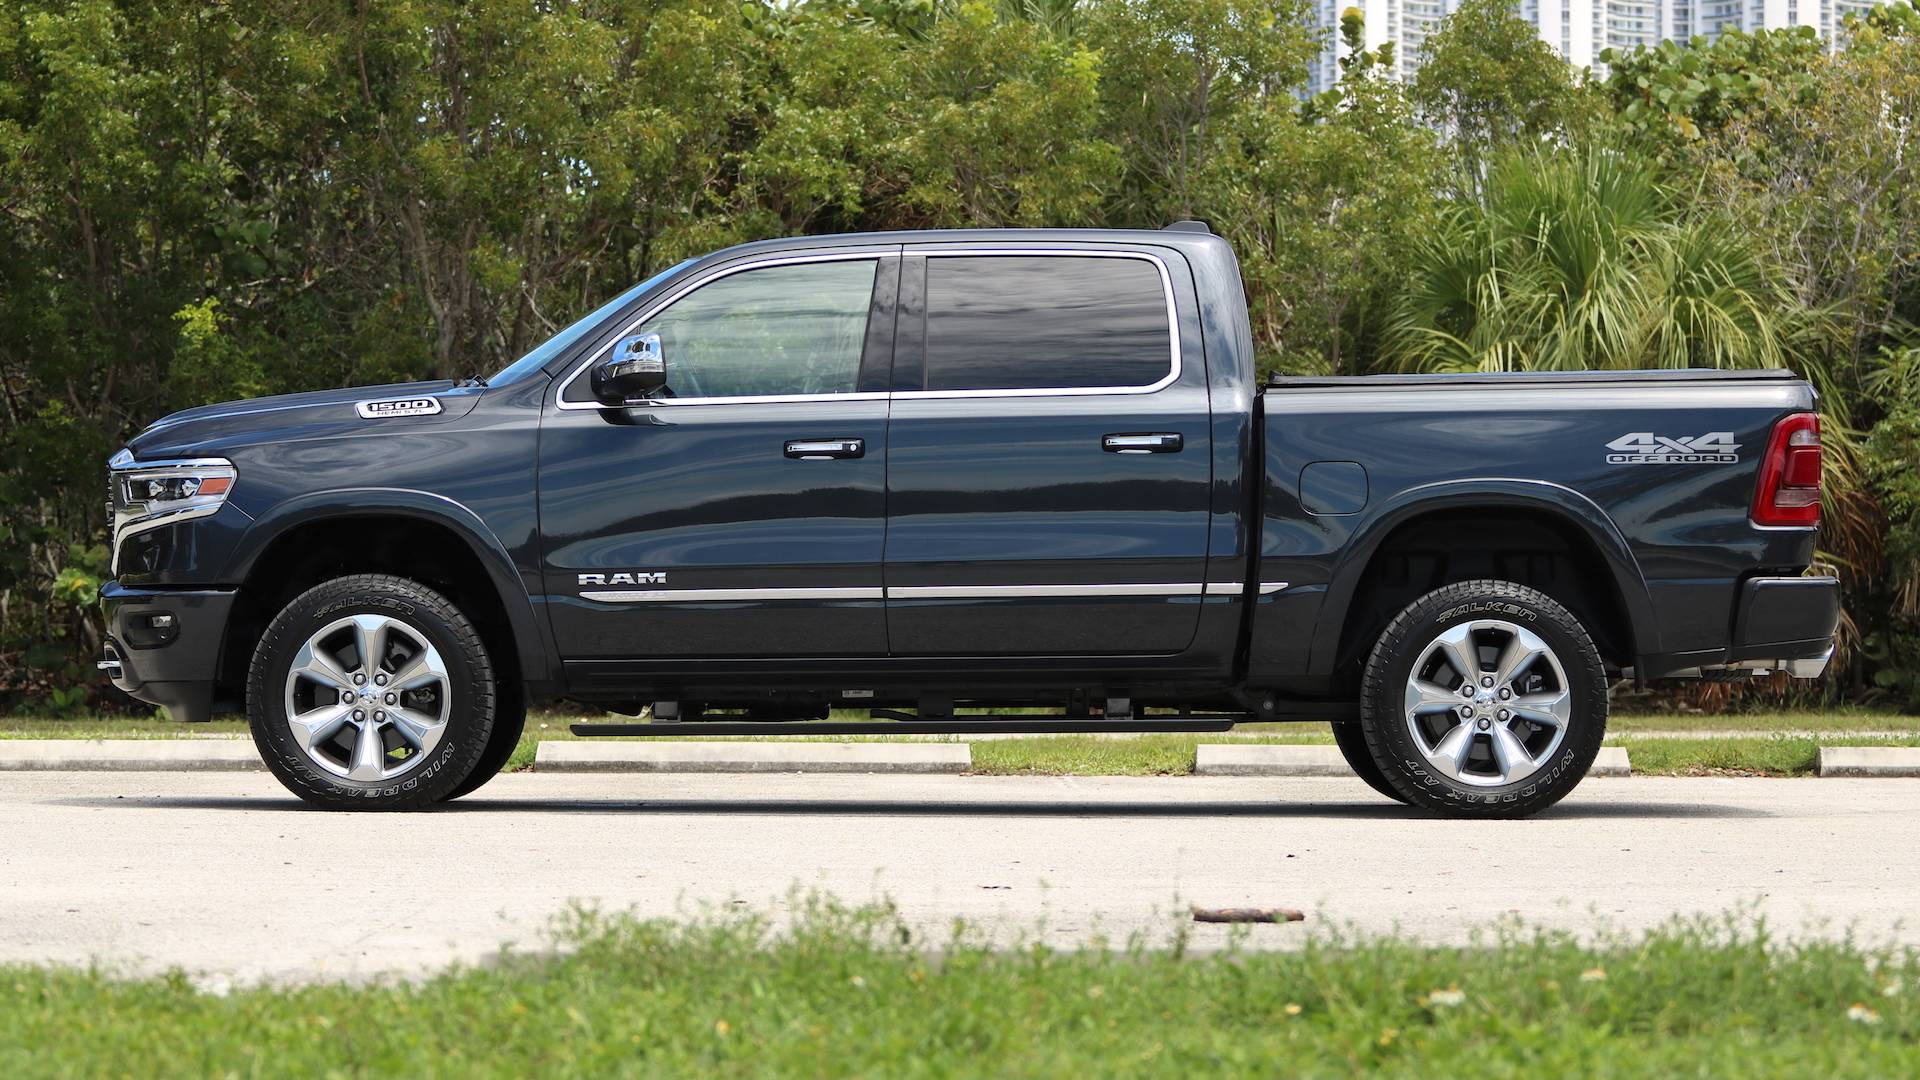 2019 Ram 1500 Limited Review: King Of The Hill